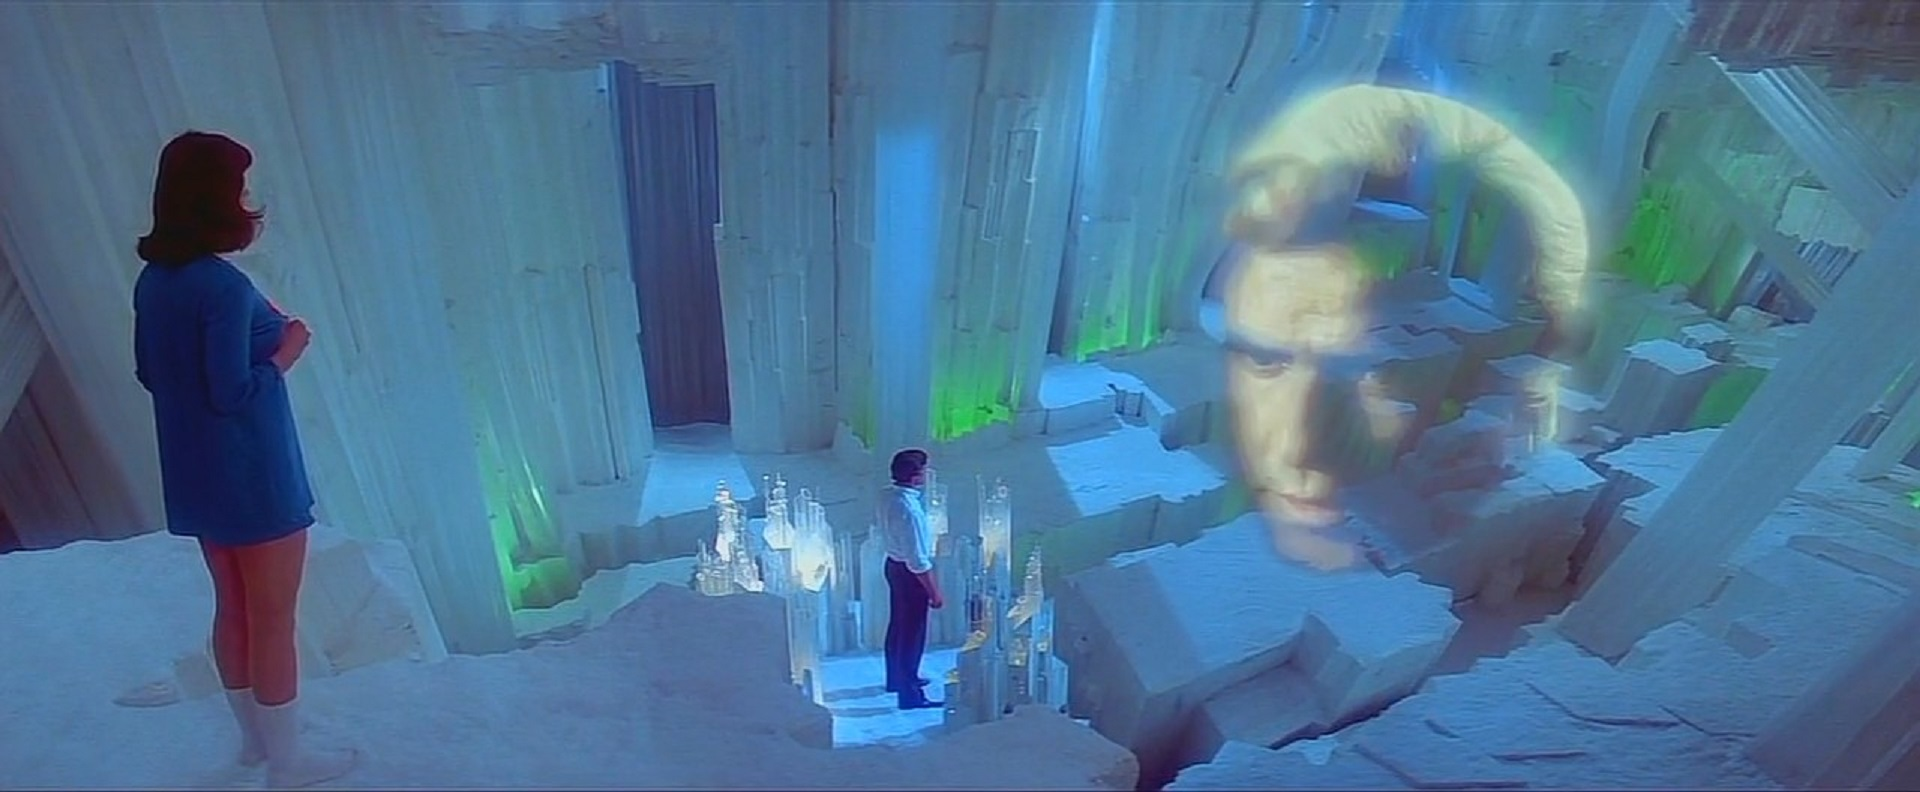 Lois Lane (Margot Kidder), Superman (Christopher Reeve) and the hologram Jor-el (Marlon Brando) at the Fortress of Solitude in Superman II The Richard Donner Cut (2006)